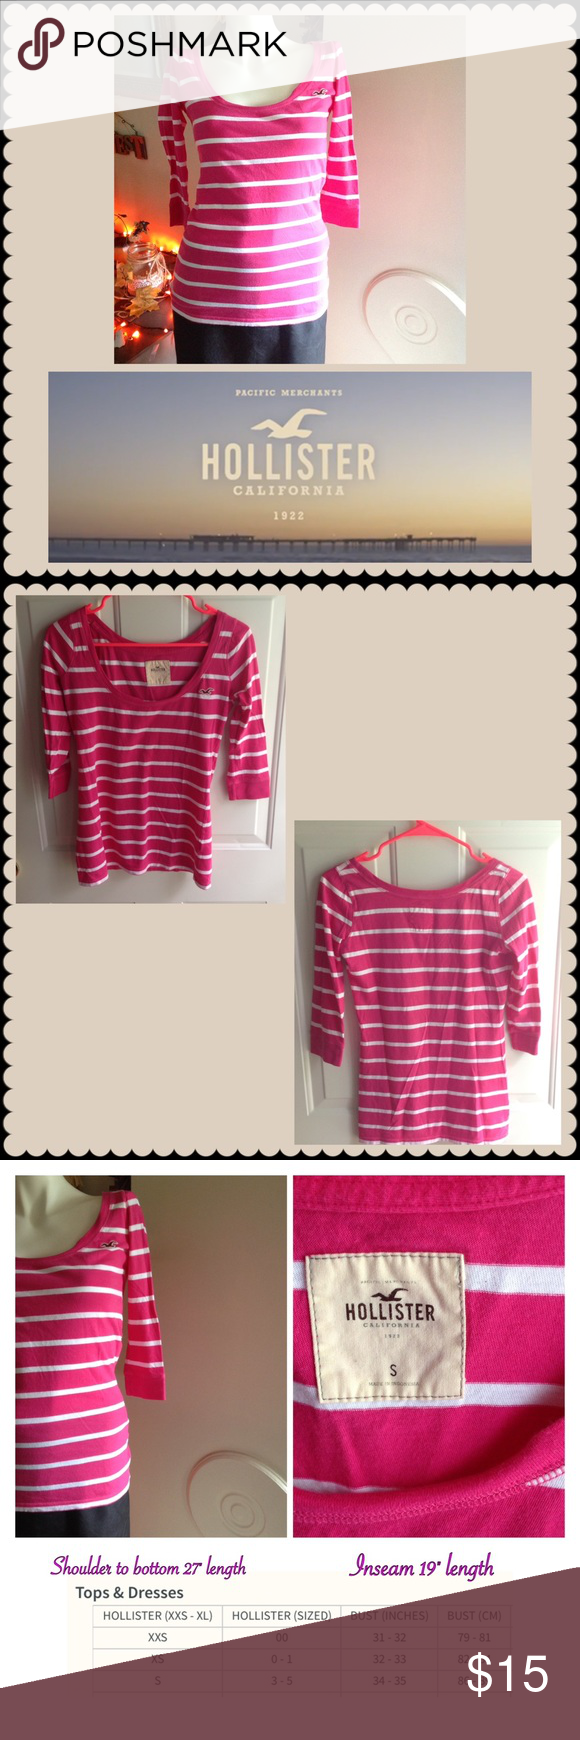 Hollister Classic Pink & white top 100% cotton material